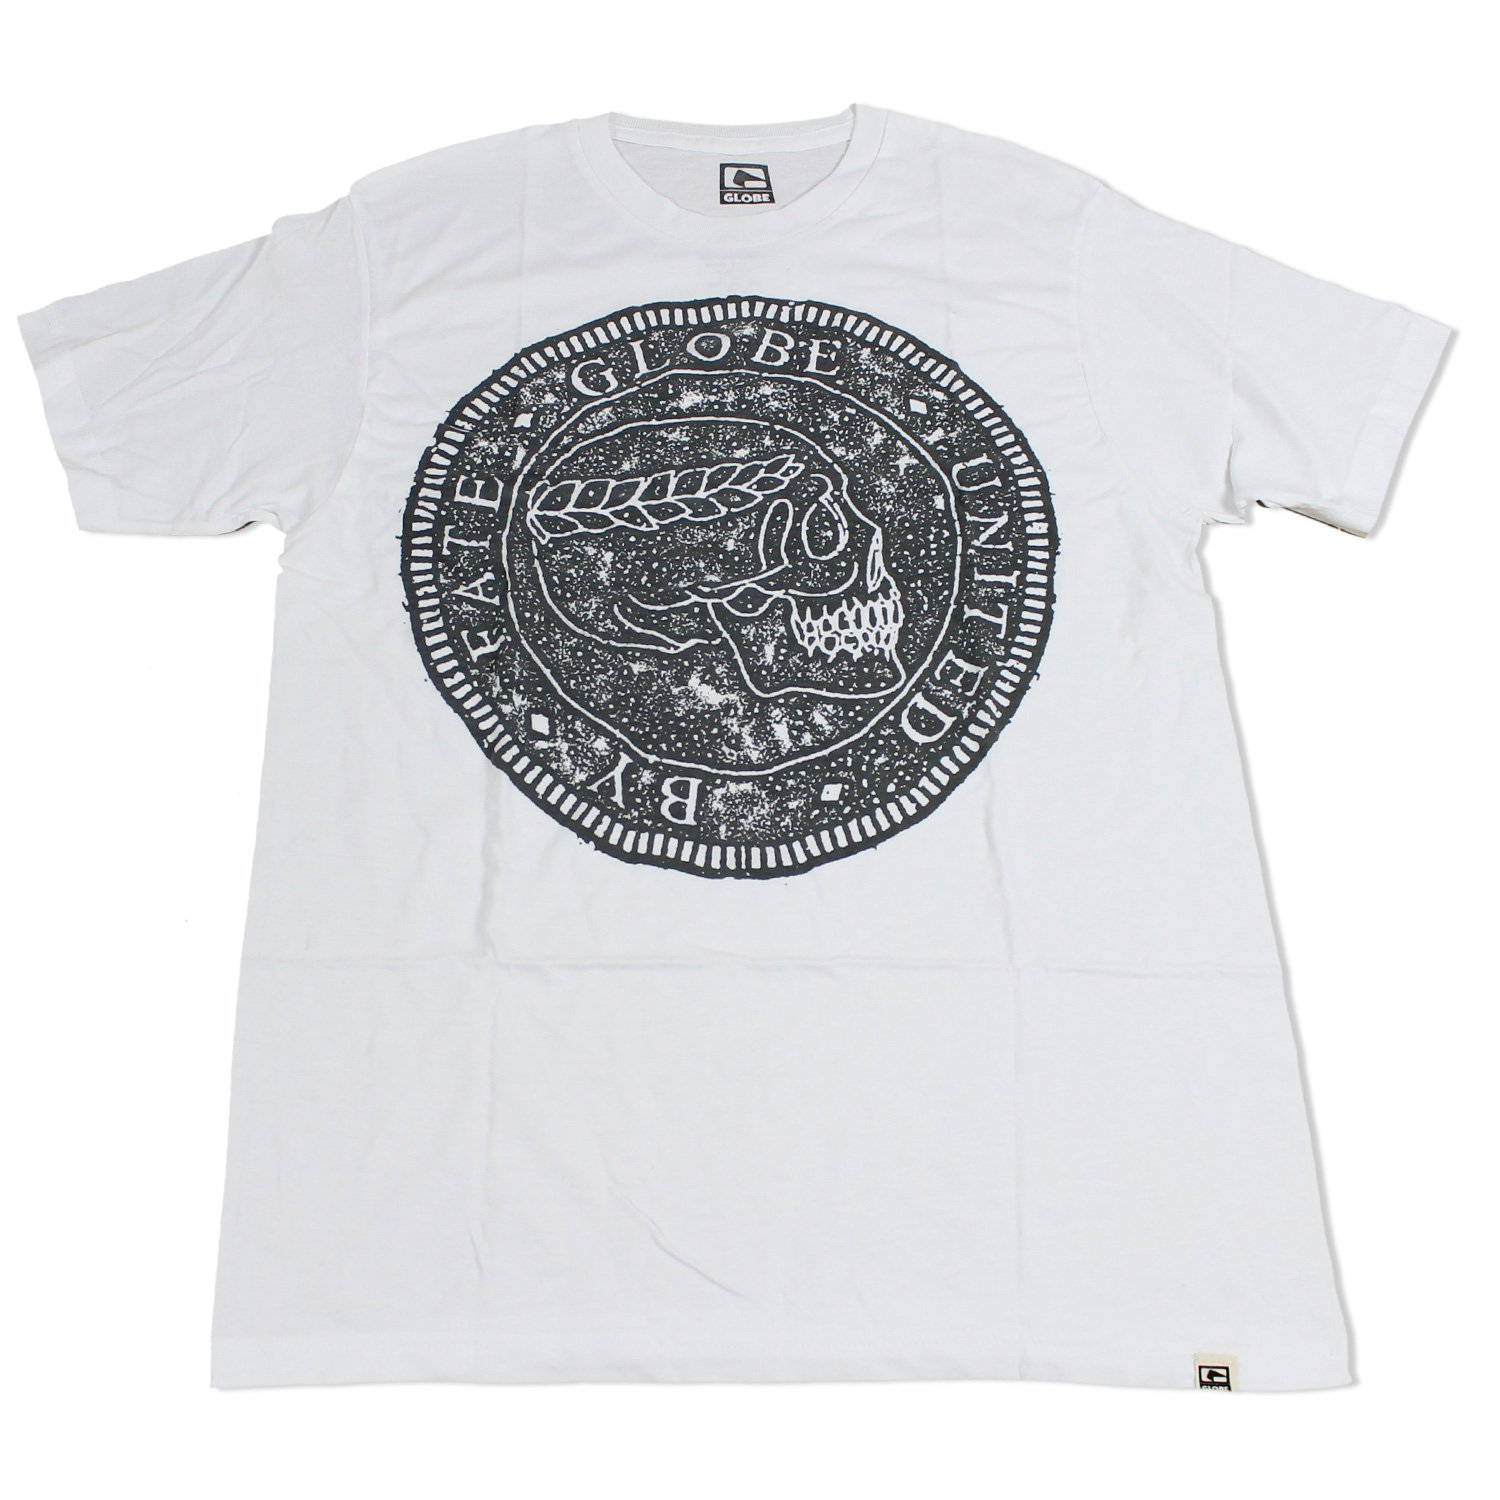 GLOBE Skate Shoes SHIRT CURRENCY WHITE Sz MED